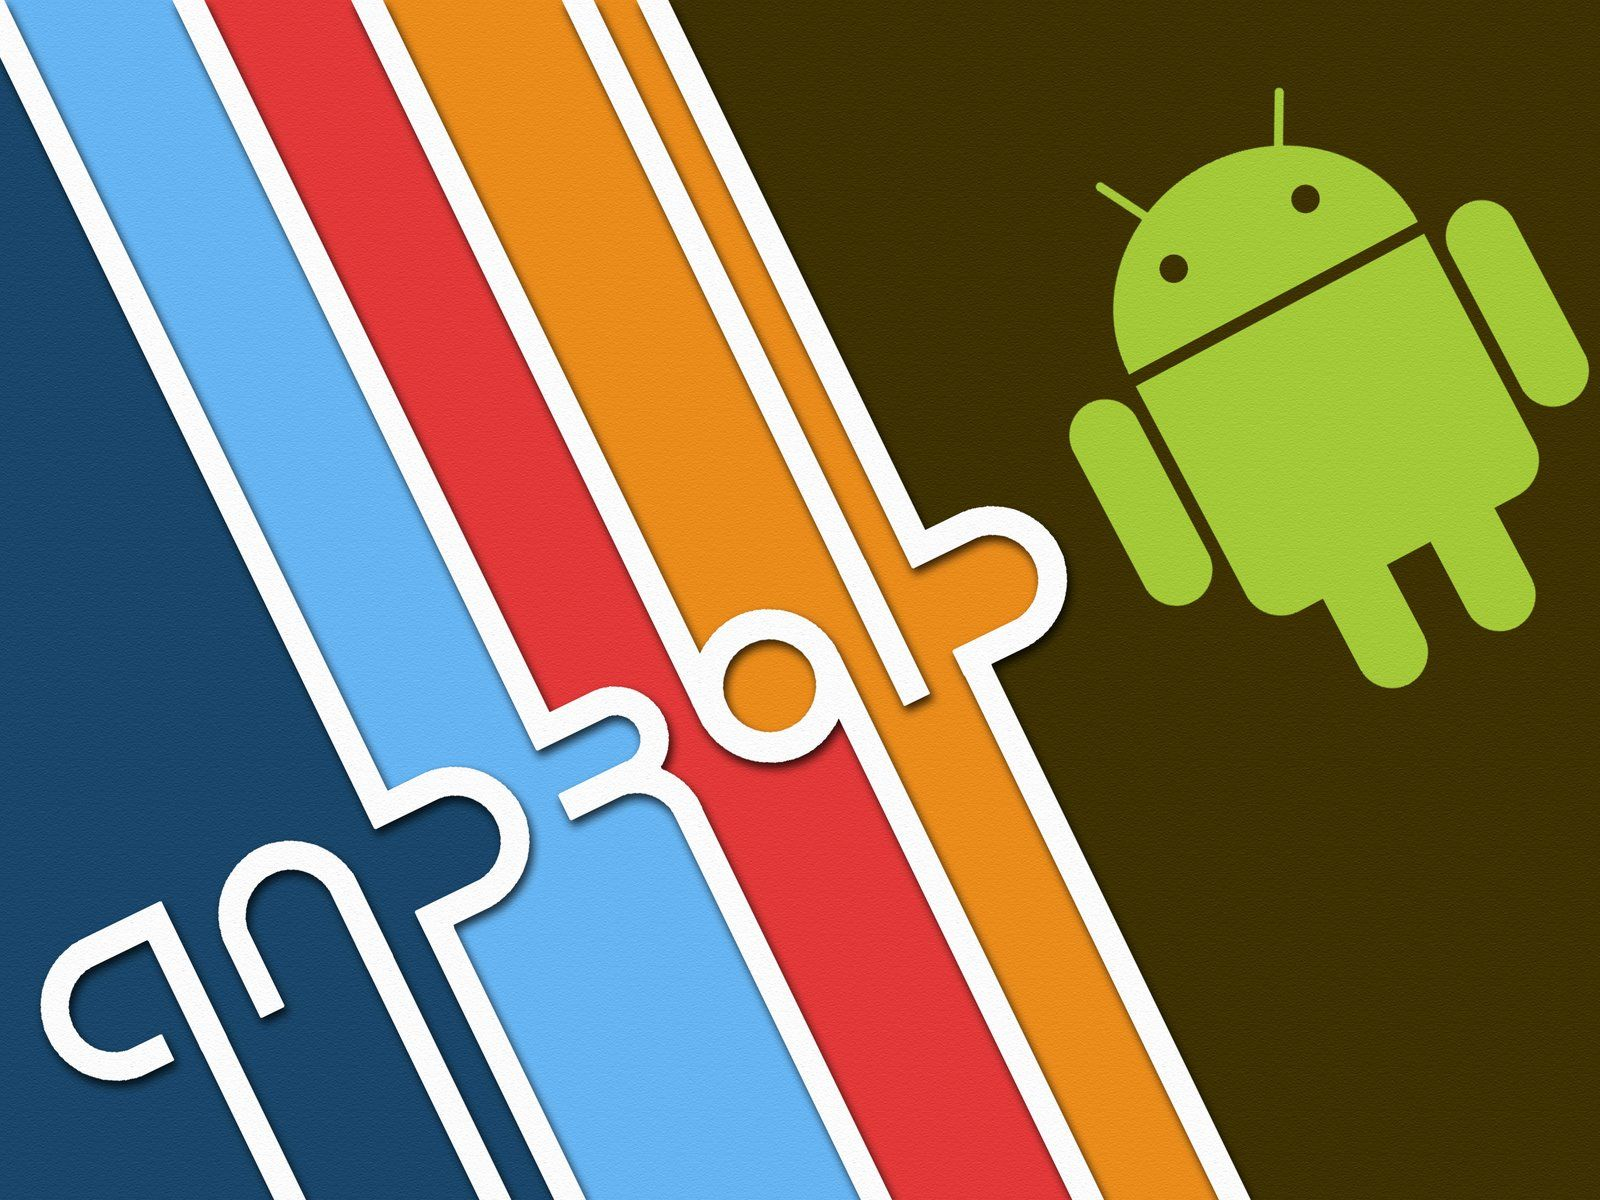 explore galaxy s3 wallpaper hd wallpaper and more sg interactive leading android application